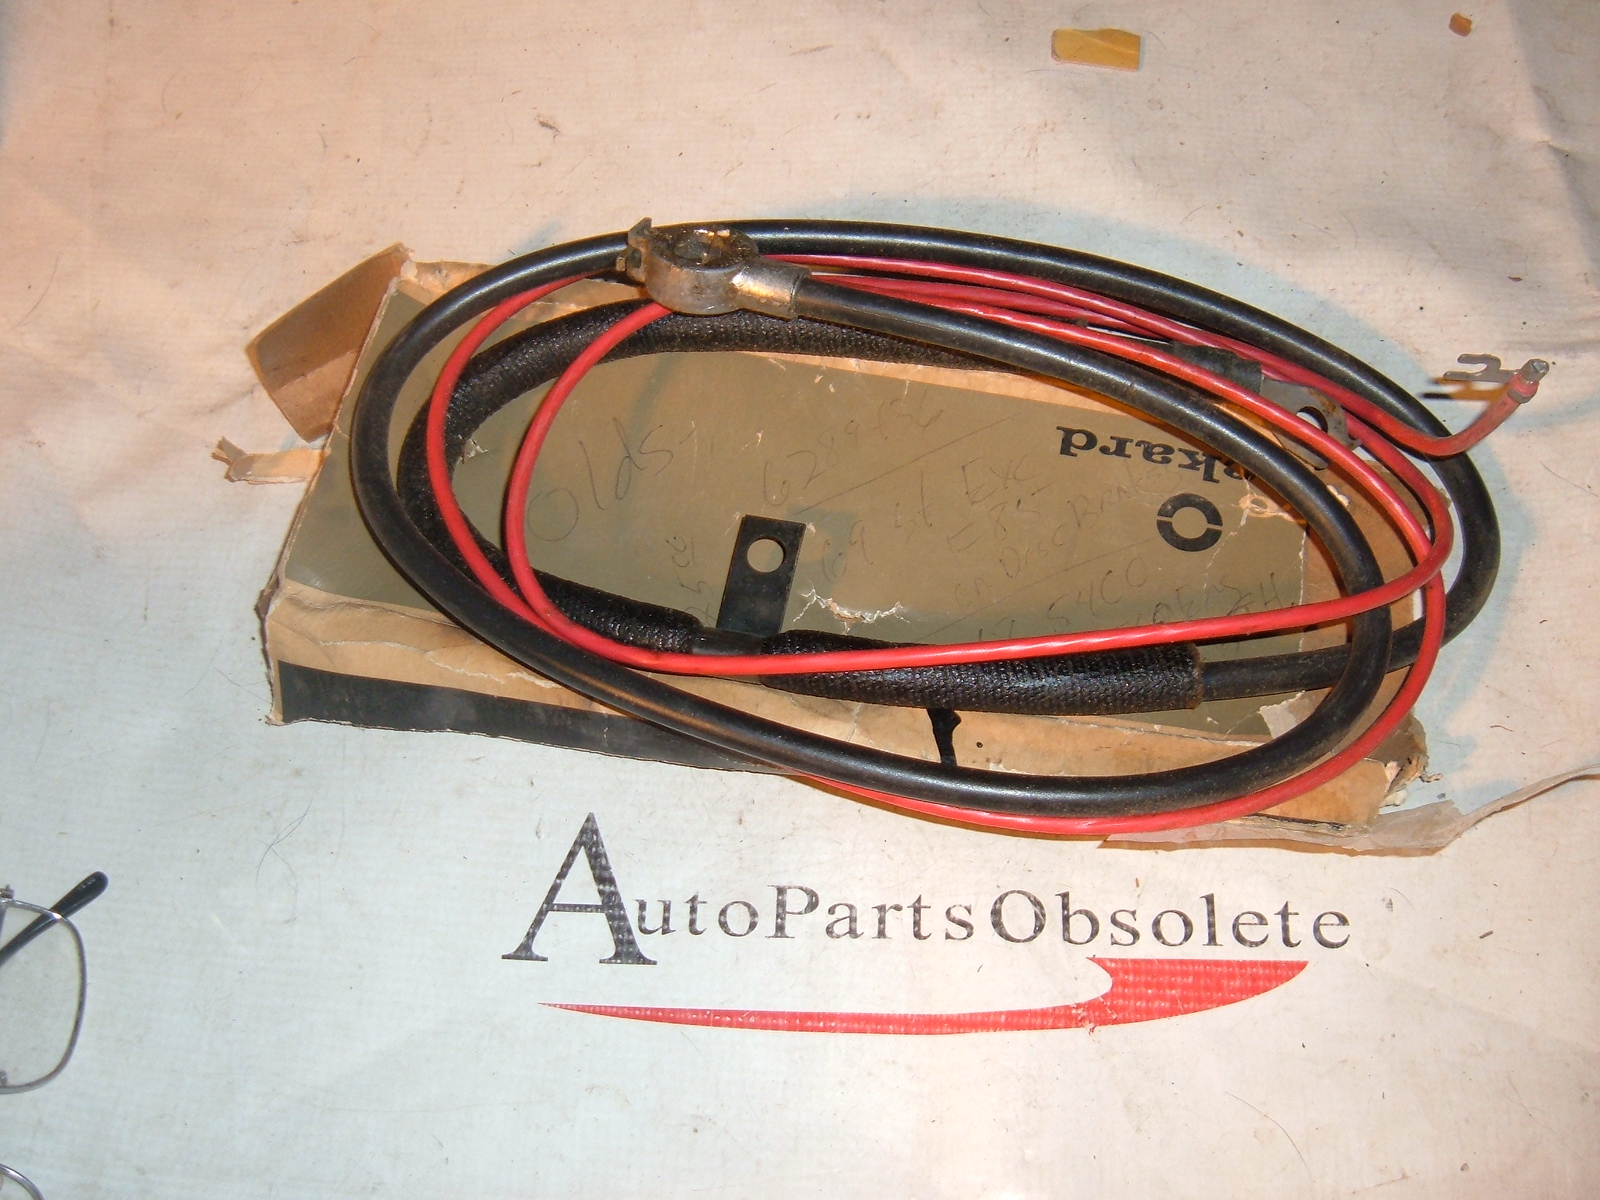 DSCF9808 X3 search results GM Wiring Harness Diagram at readyjetset.co